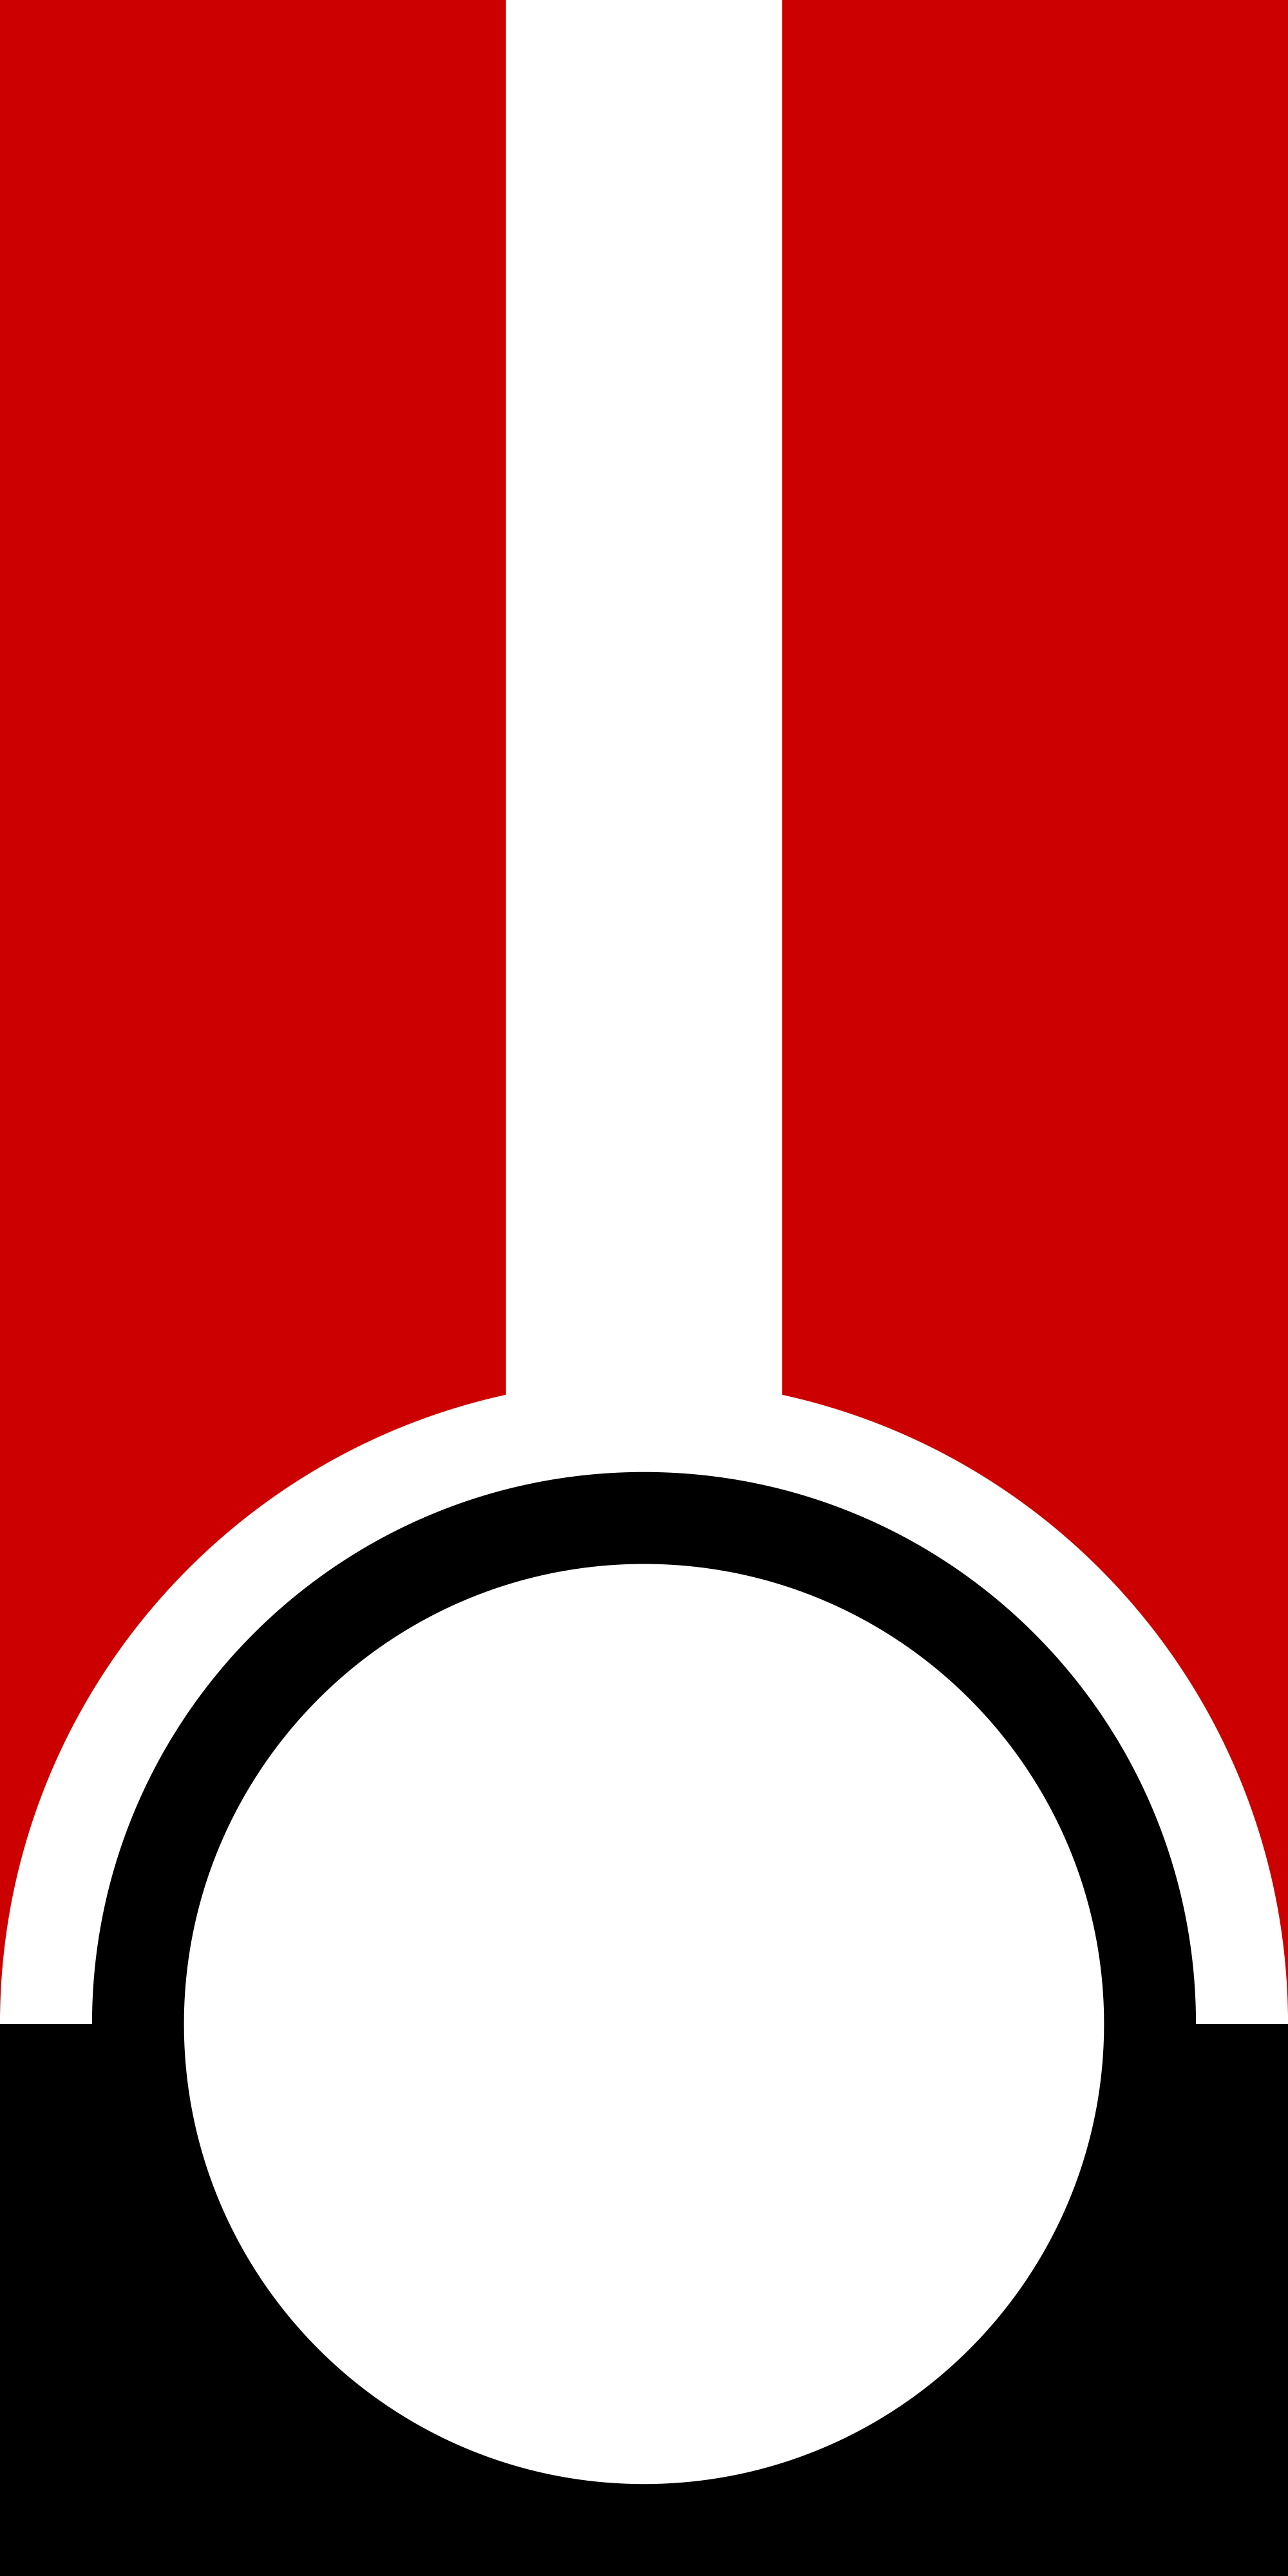 [Image: Coalition_flag_2_on_1.png]